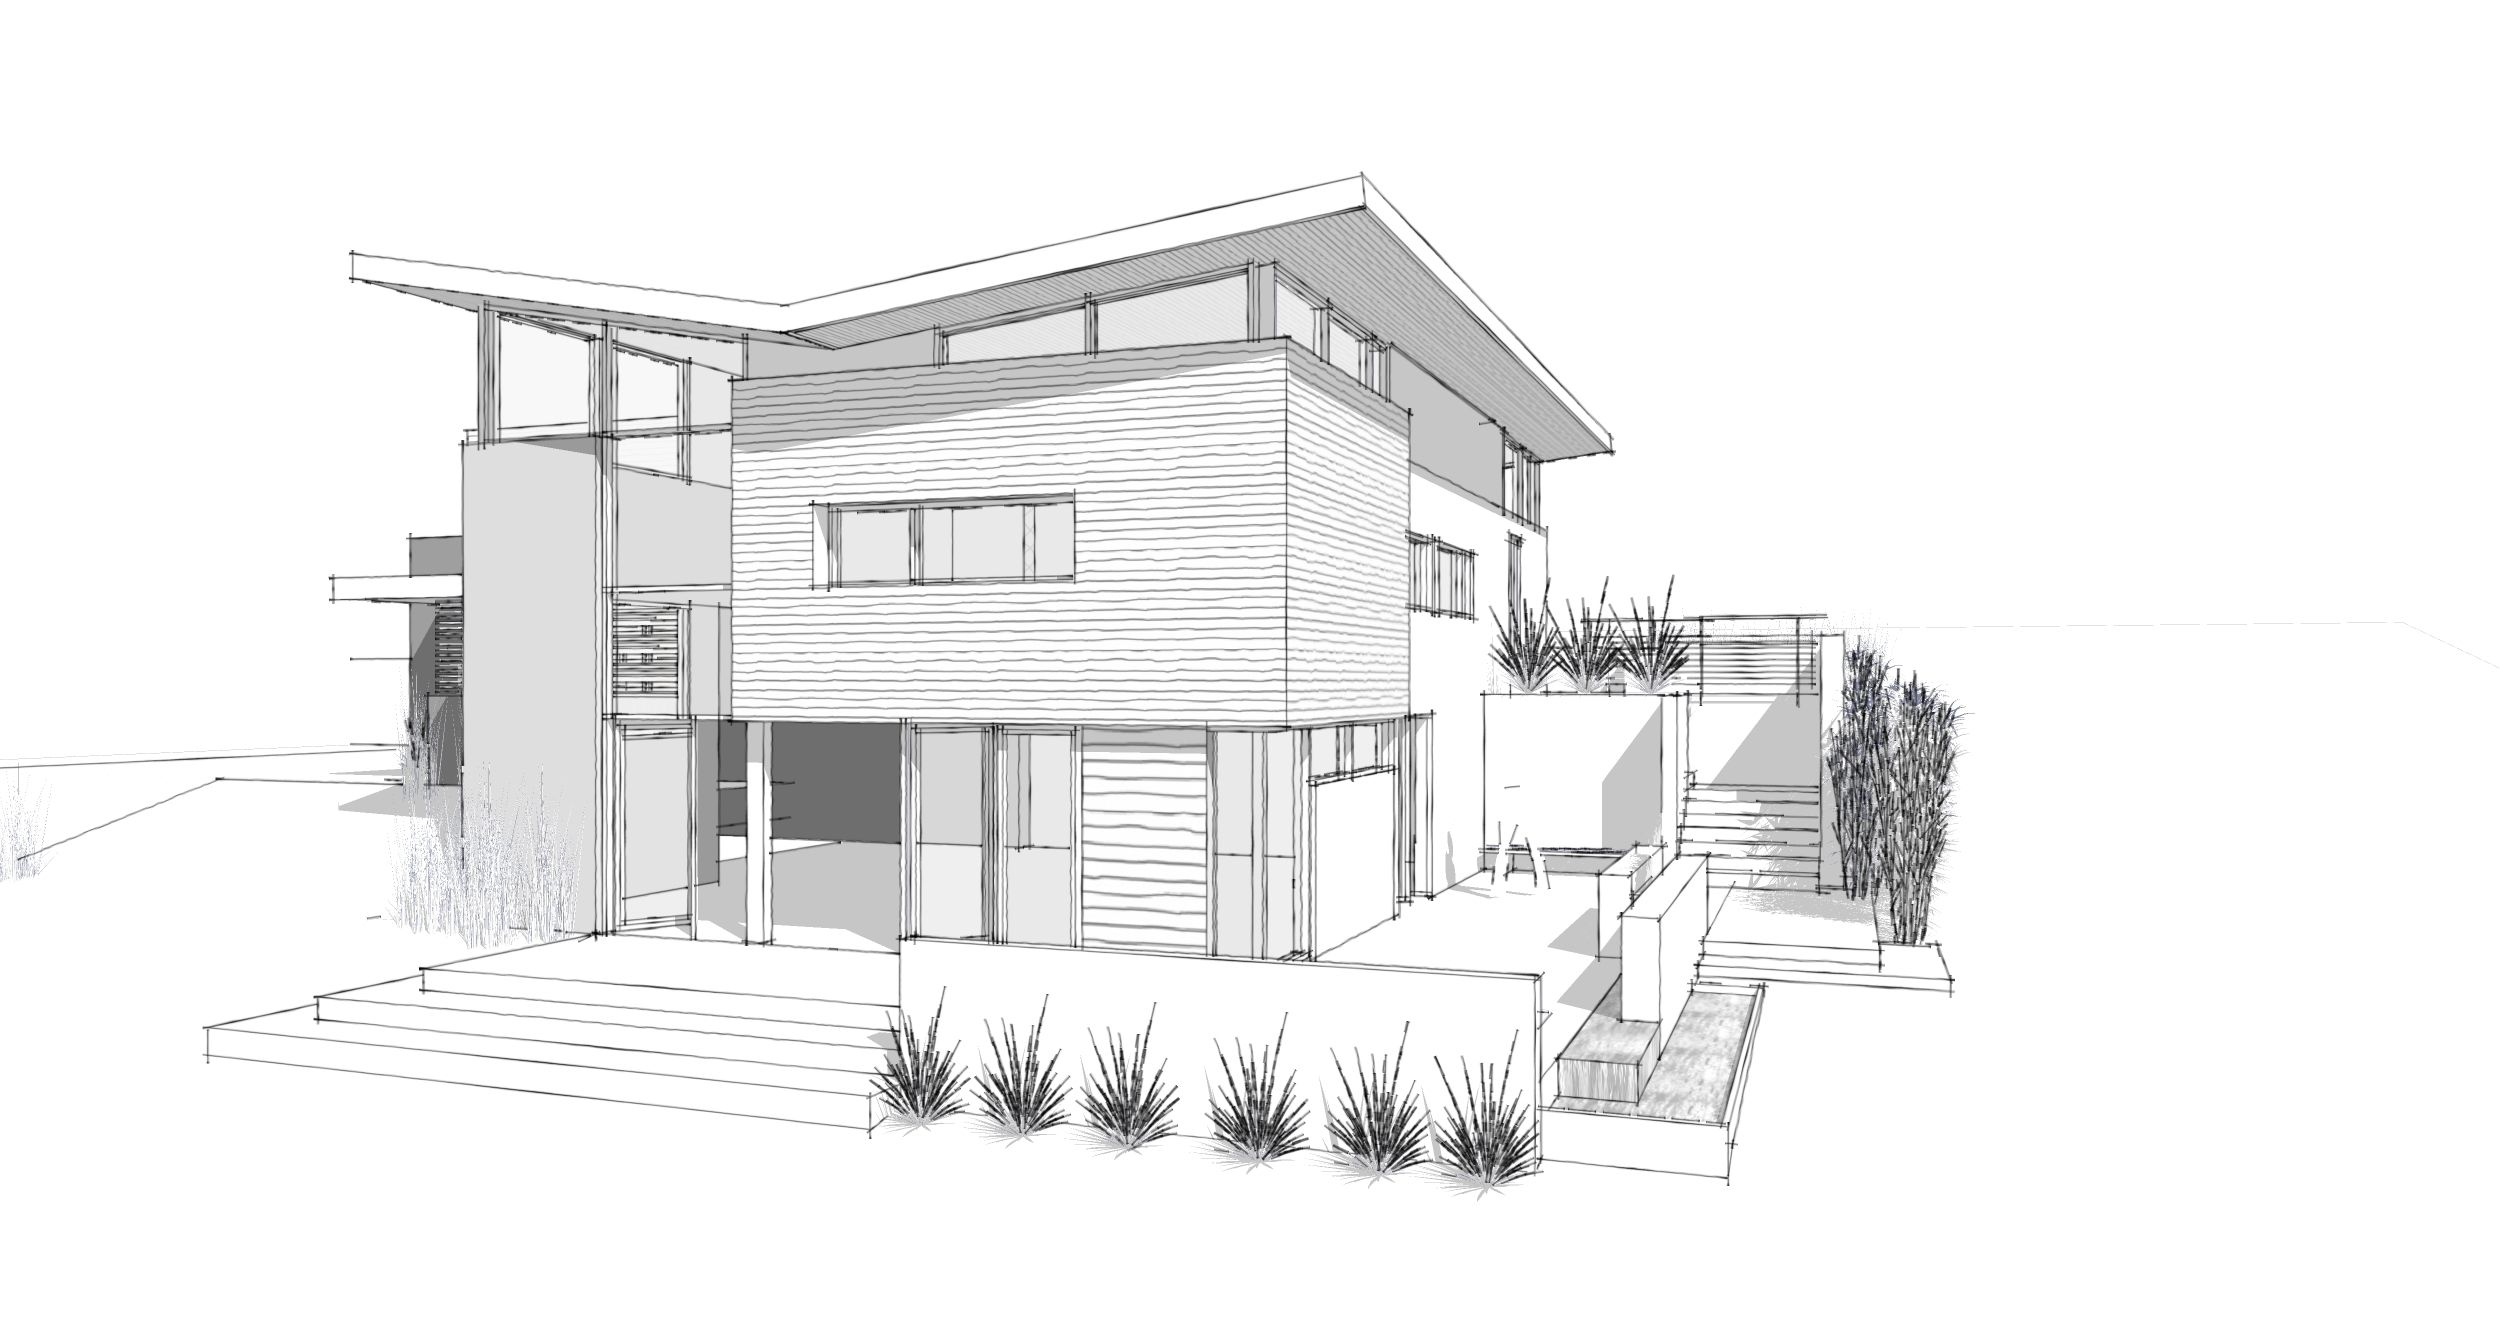 Modern home architecture sketches design ideas 13435 for Draw your house